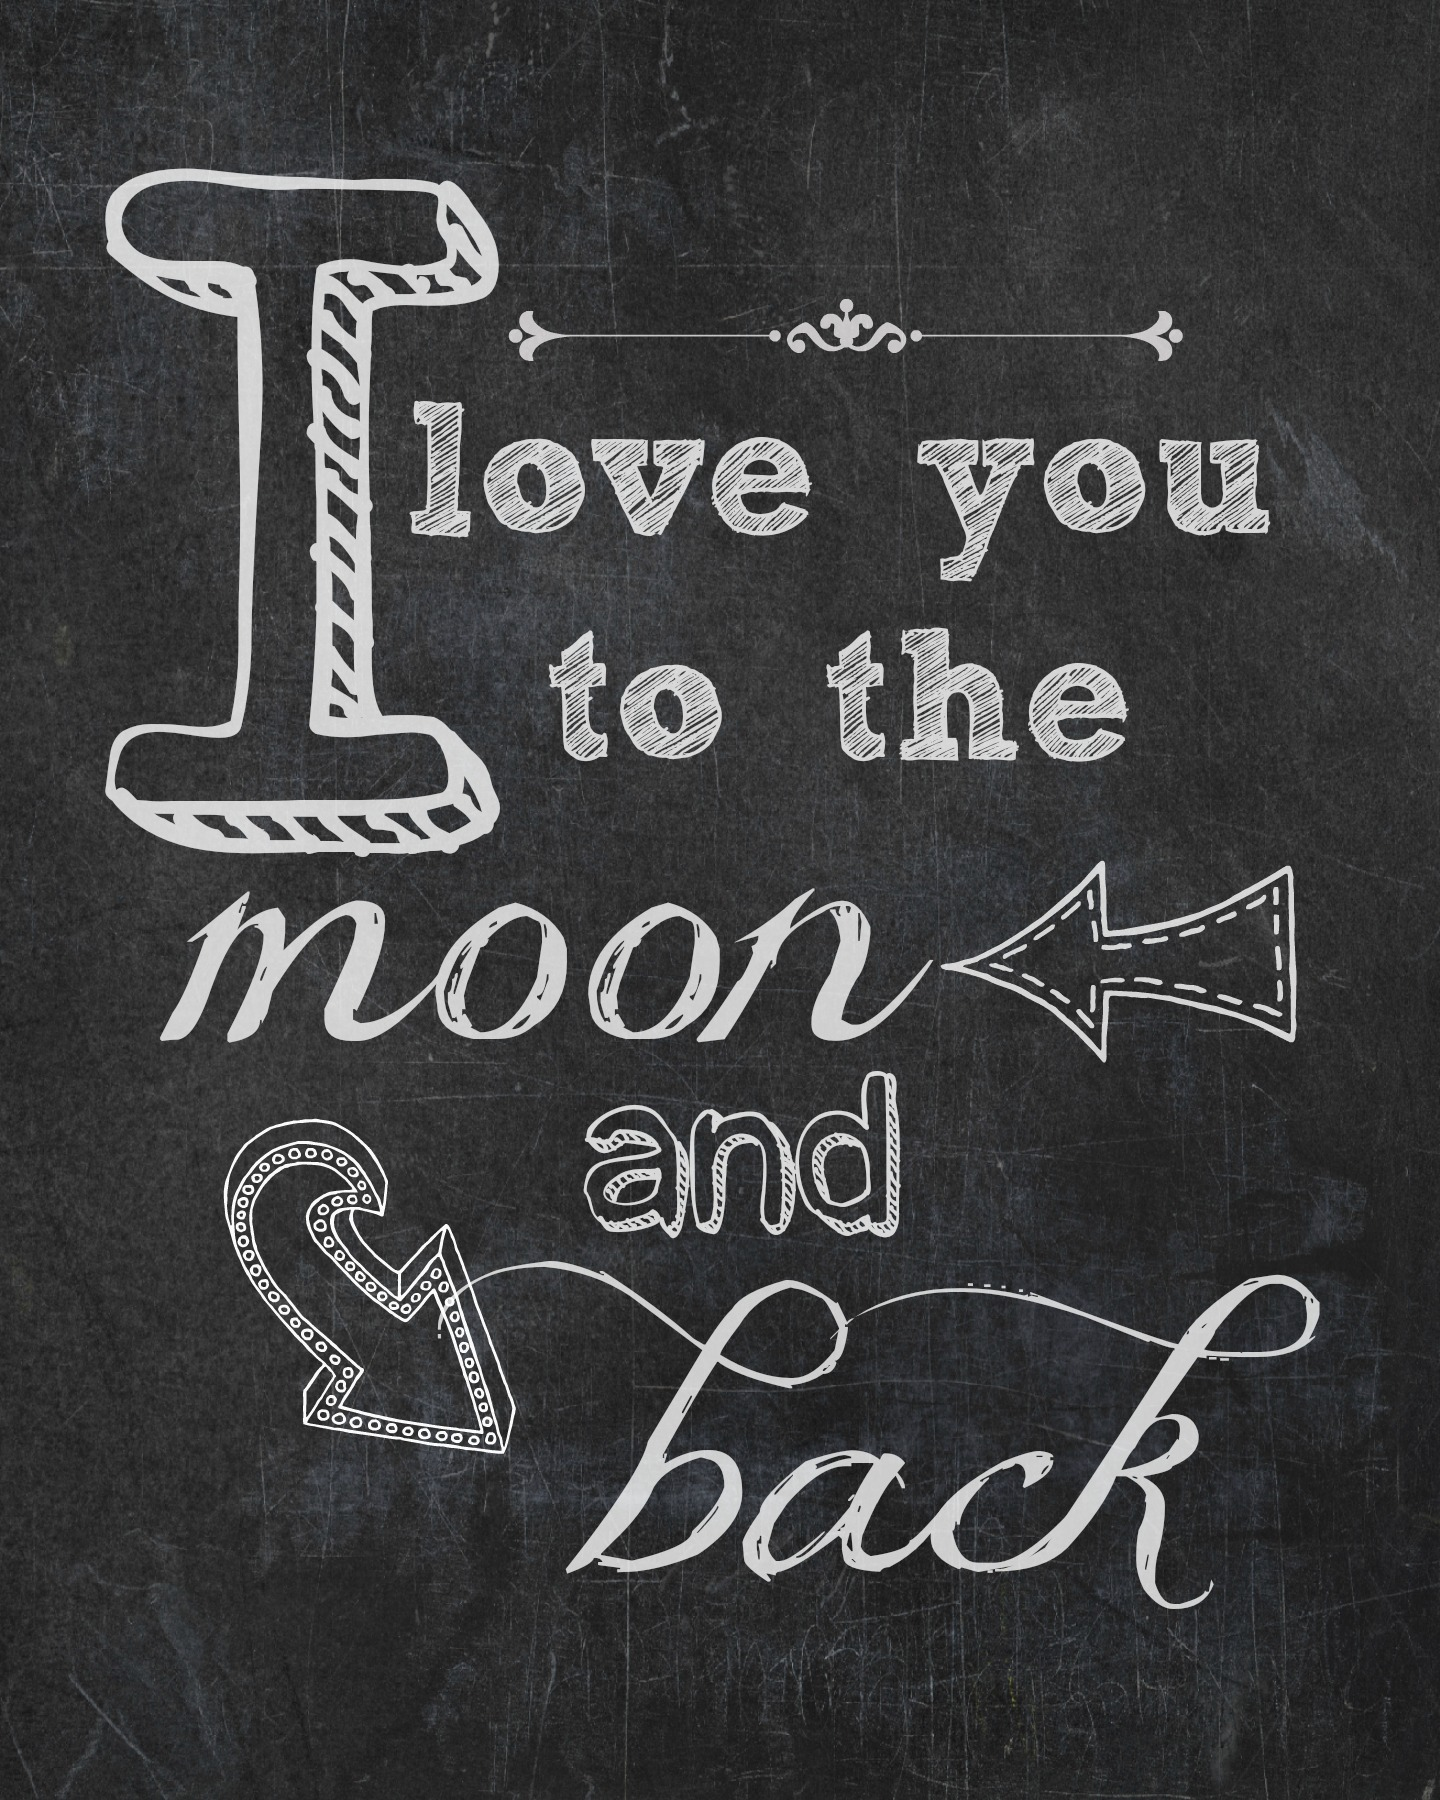 i love you to the moon back free printable endlessly. Black Bedroom Furniture Sets. Home Design Ideas